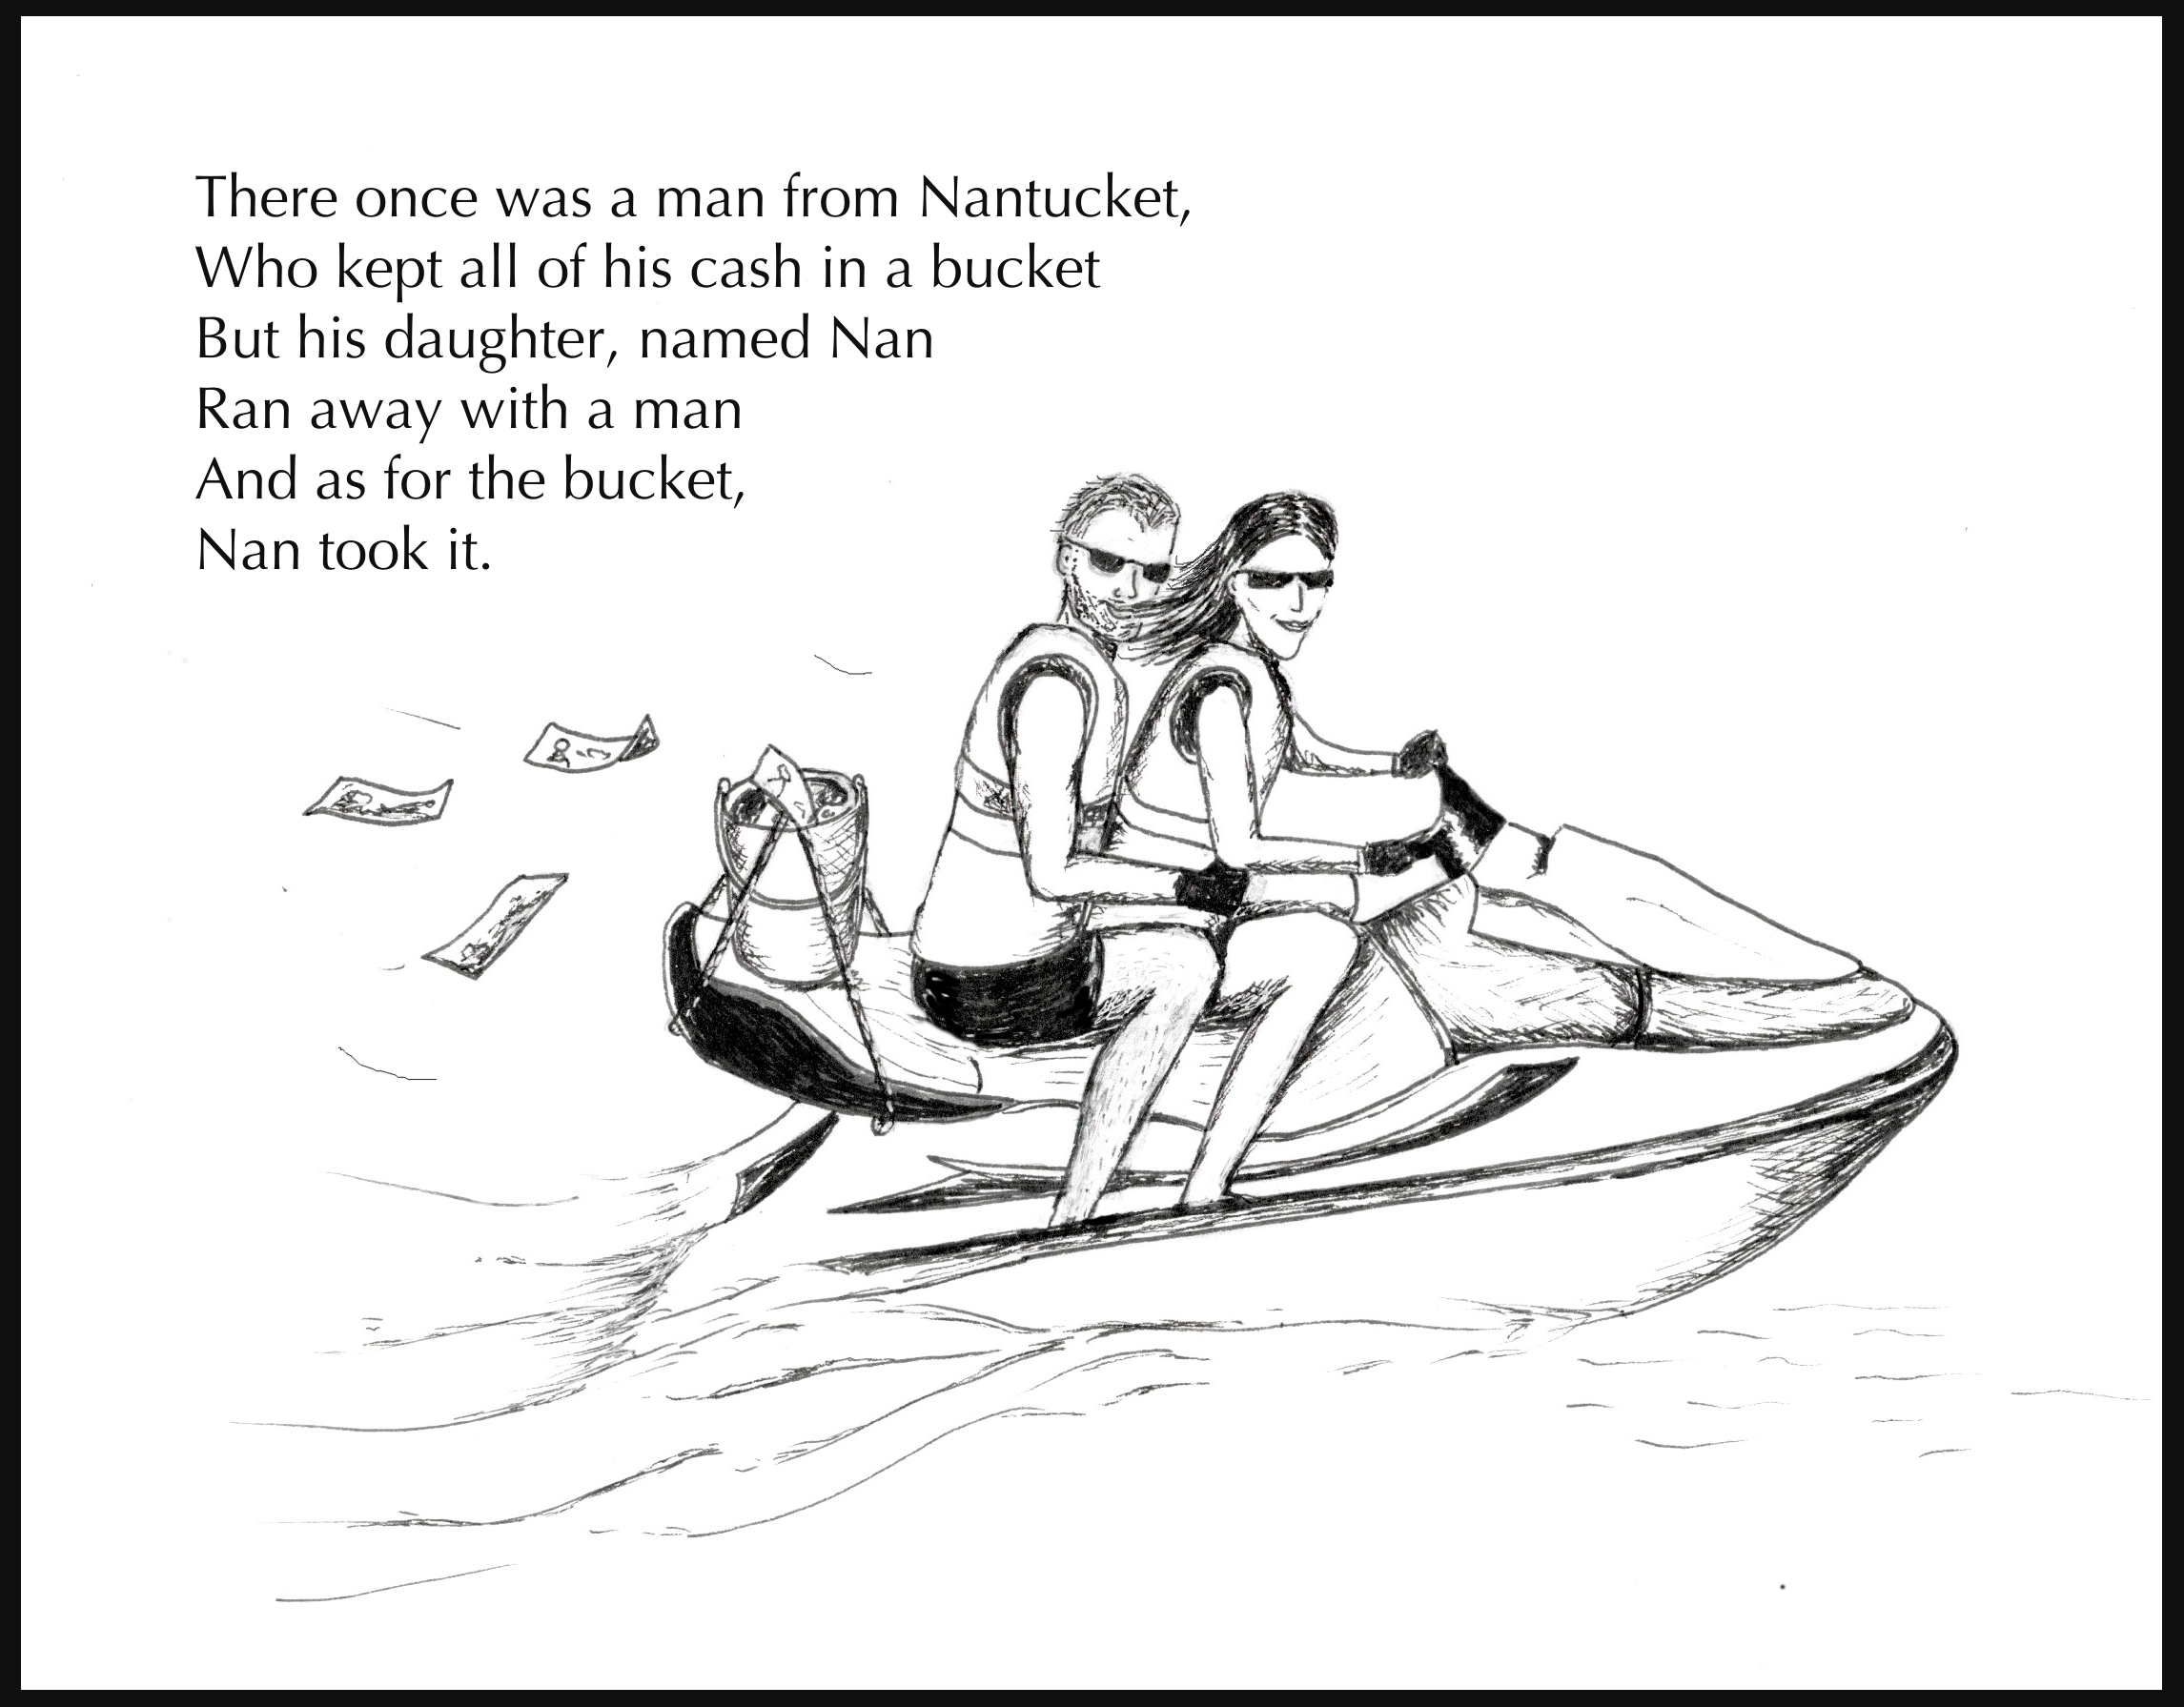 nantucket limerick illustration